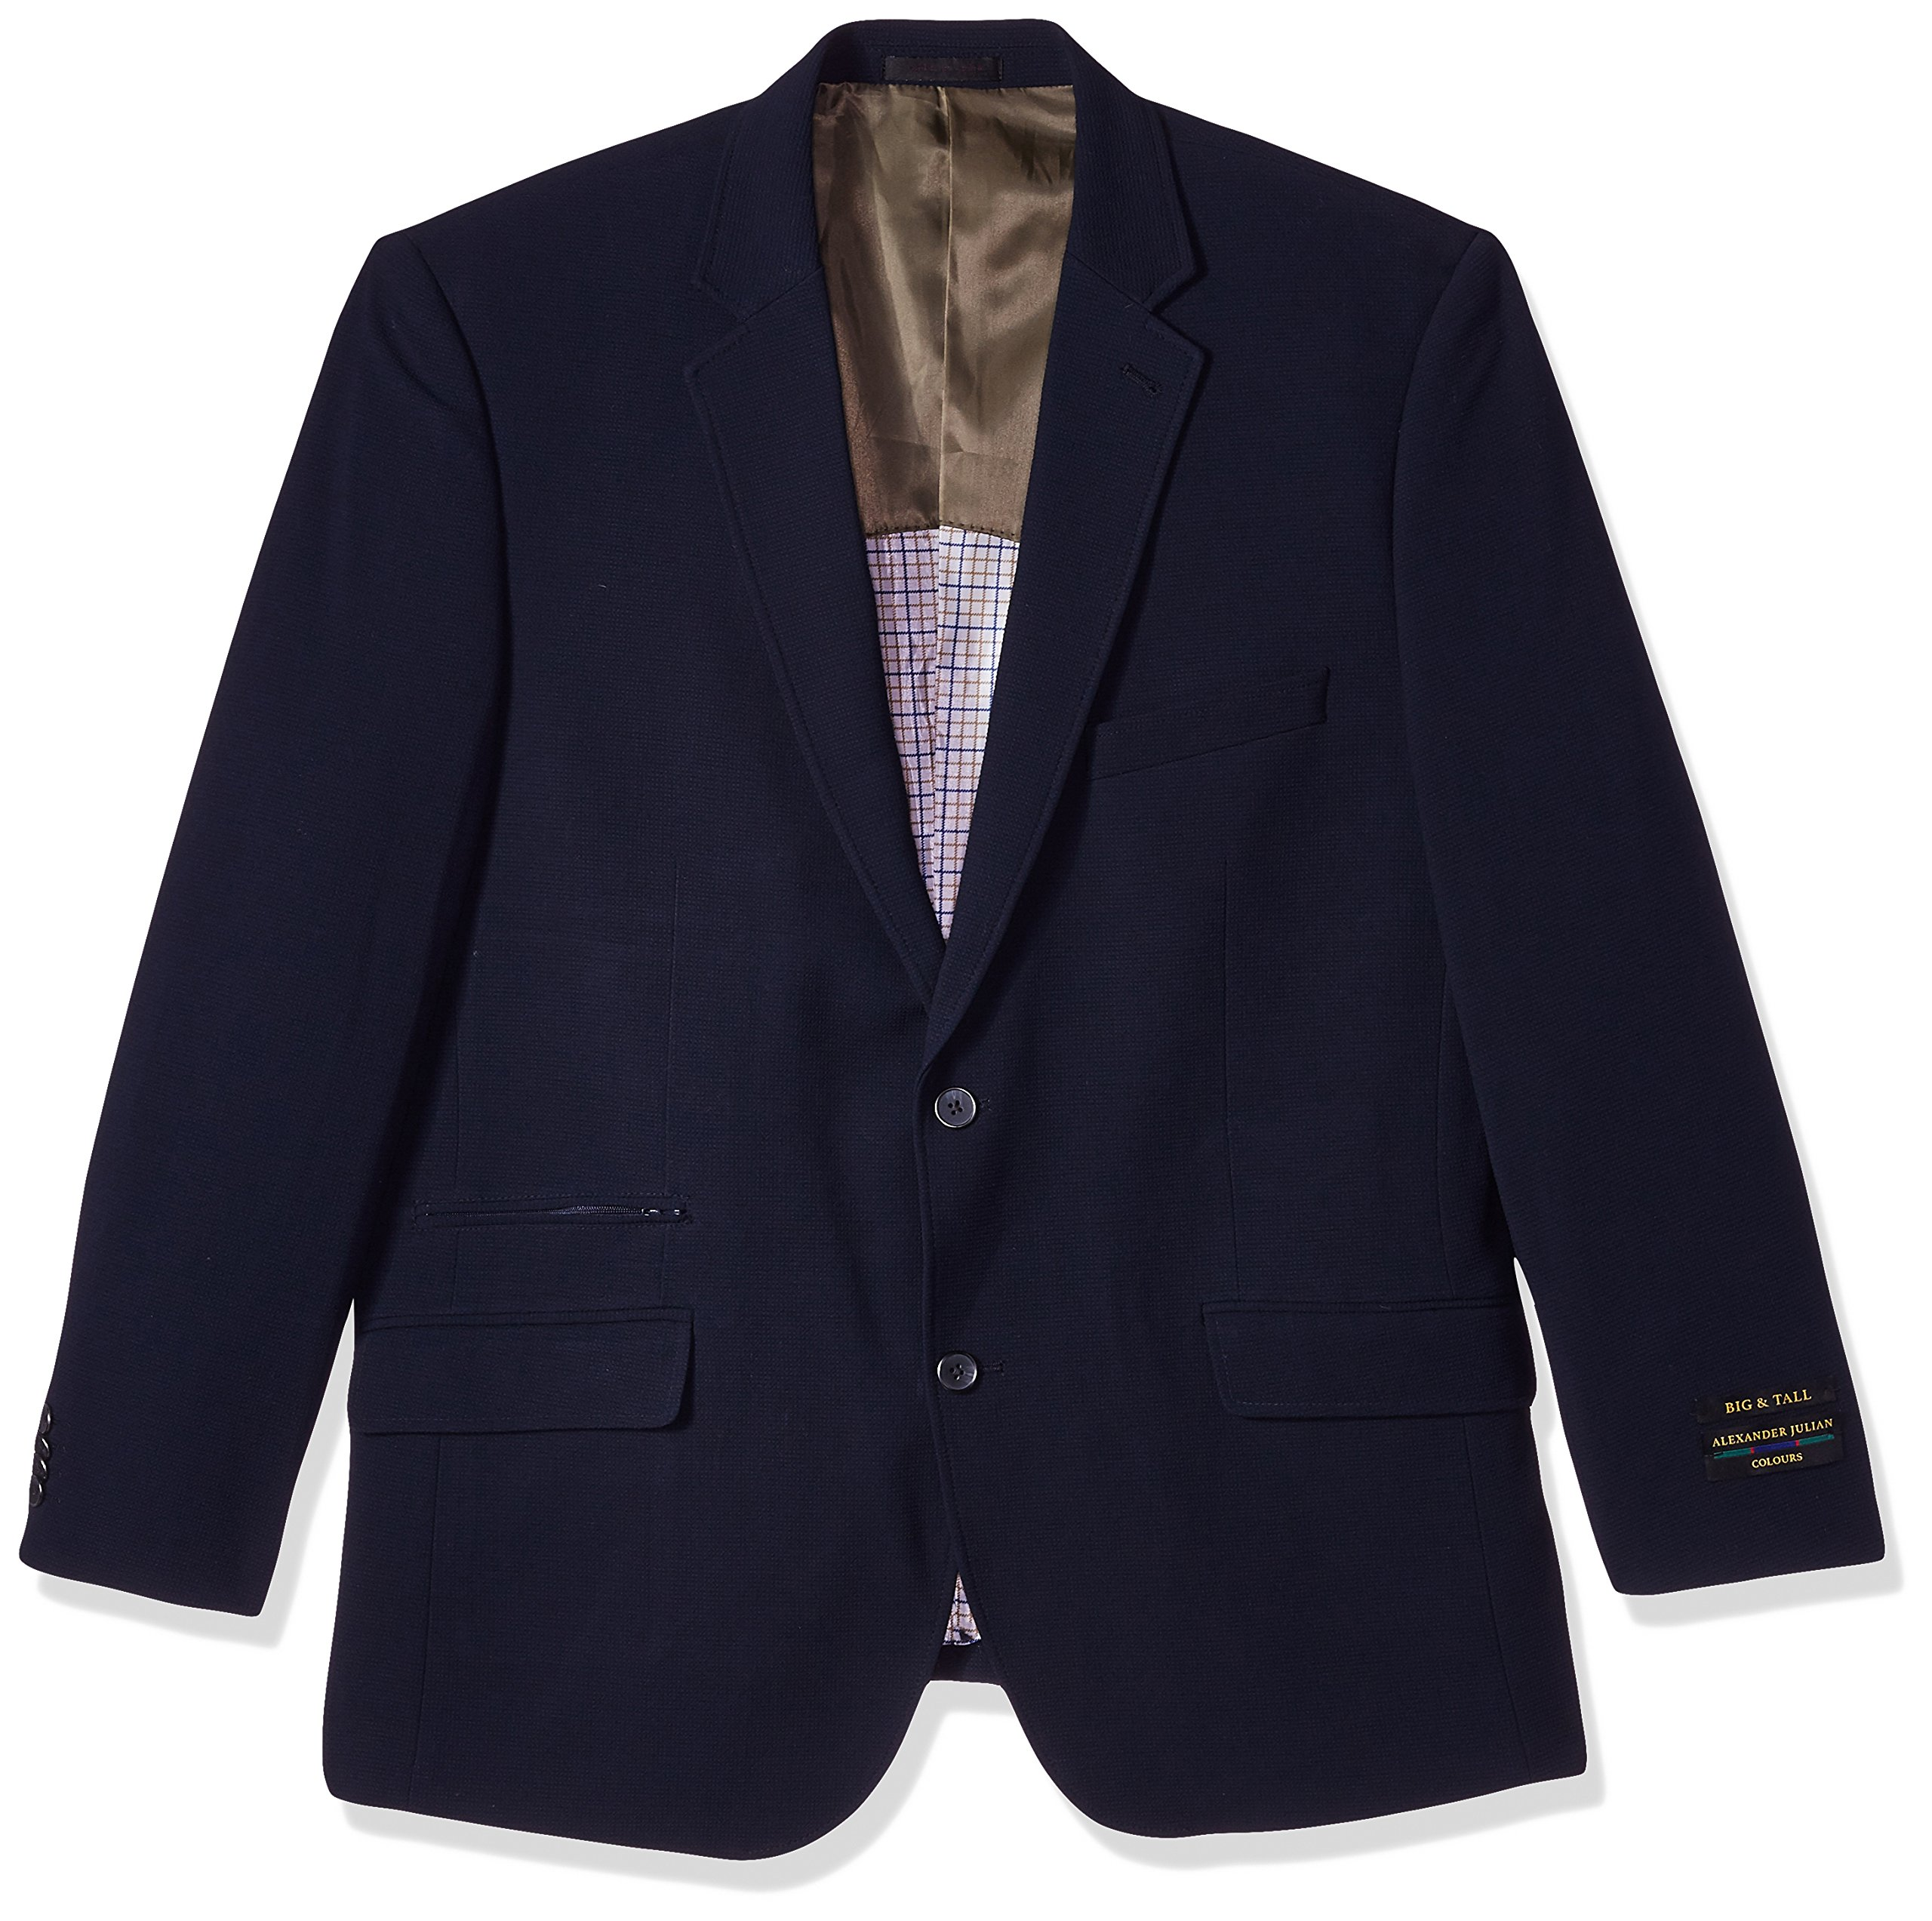 Alexander Julian Colours Men's Big and Tall Single Breasted Knit Travel Sportcoat, Navy Texture, 56 Regular by Alexander Julian Colours